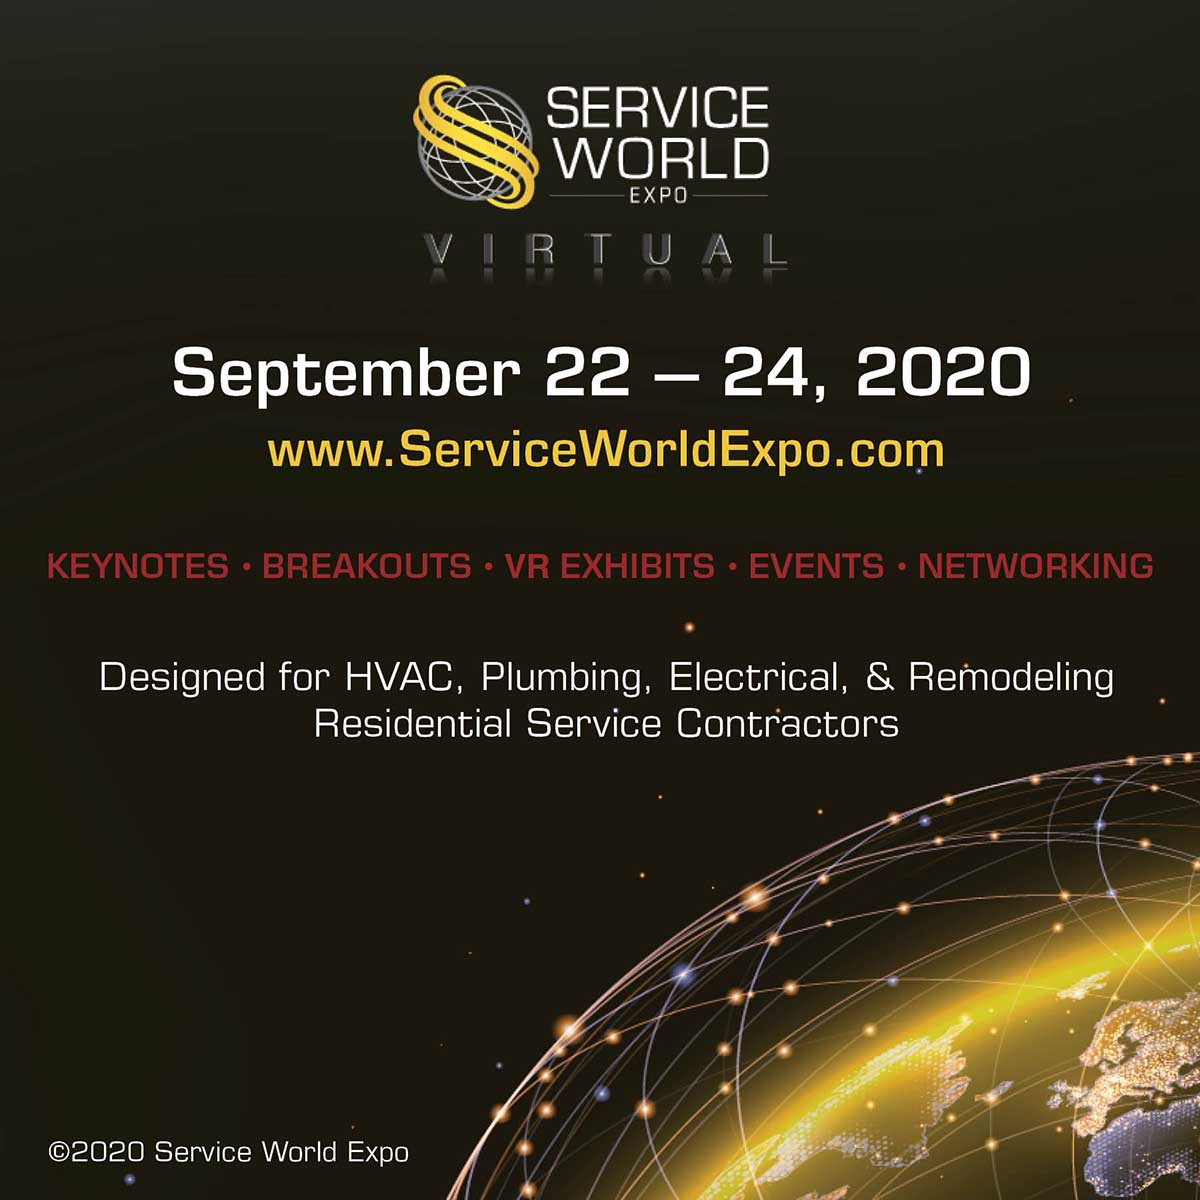 Service World Expo Virtual 2020